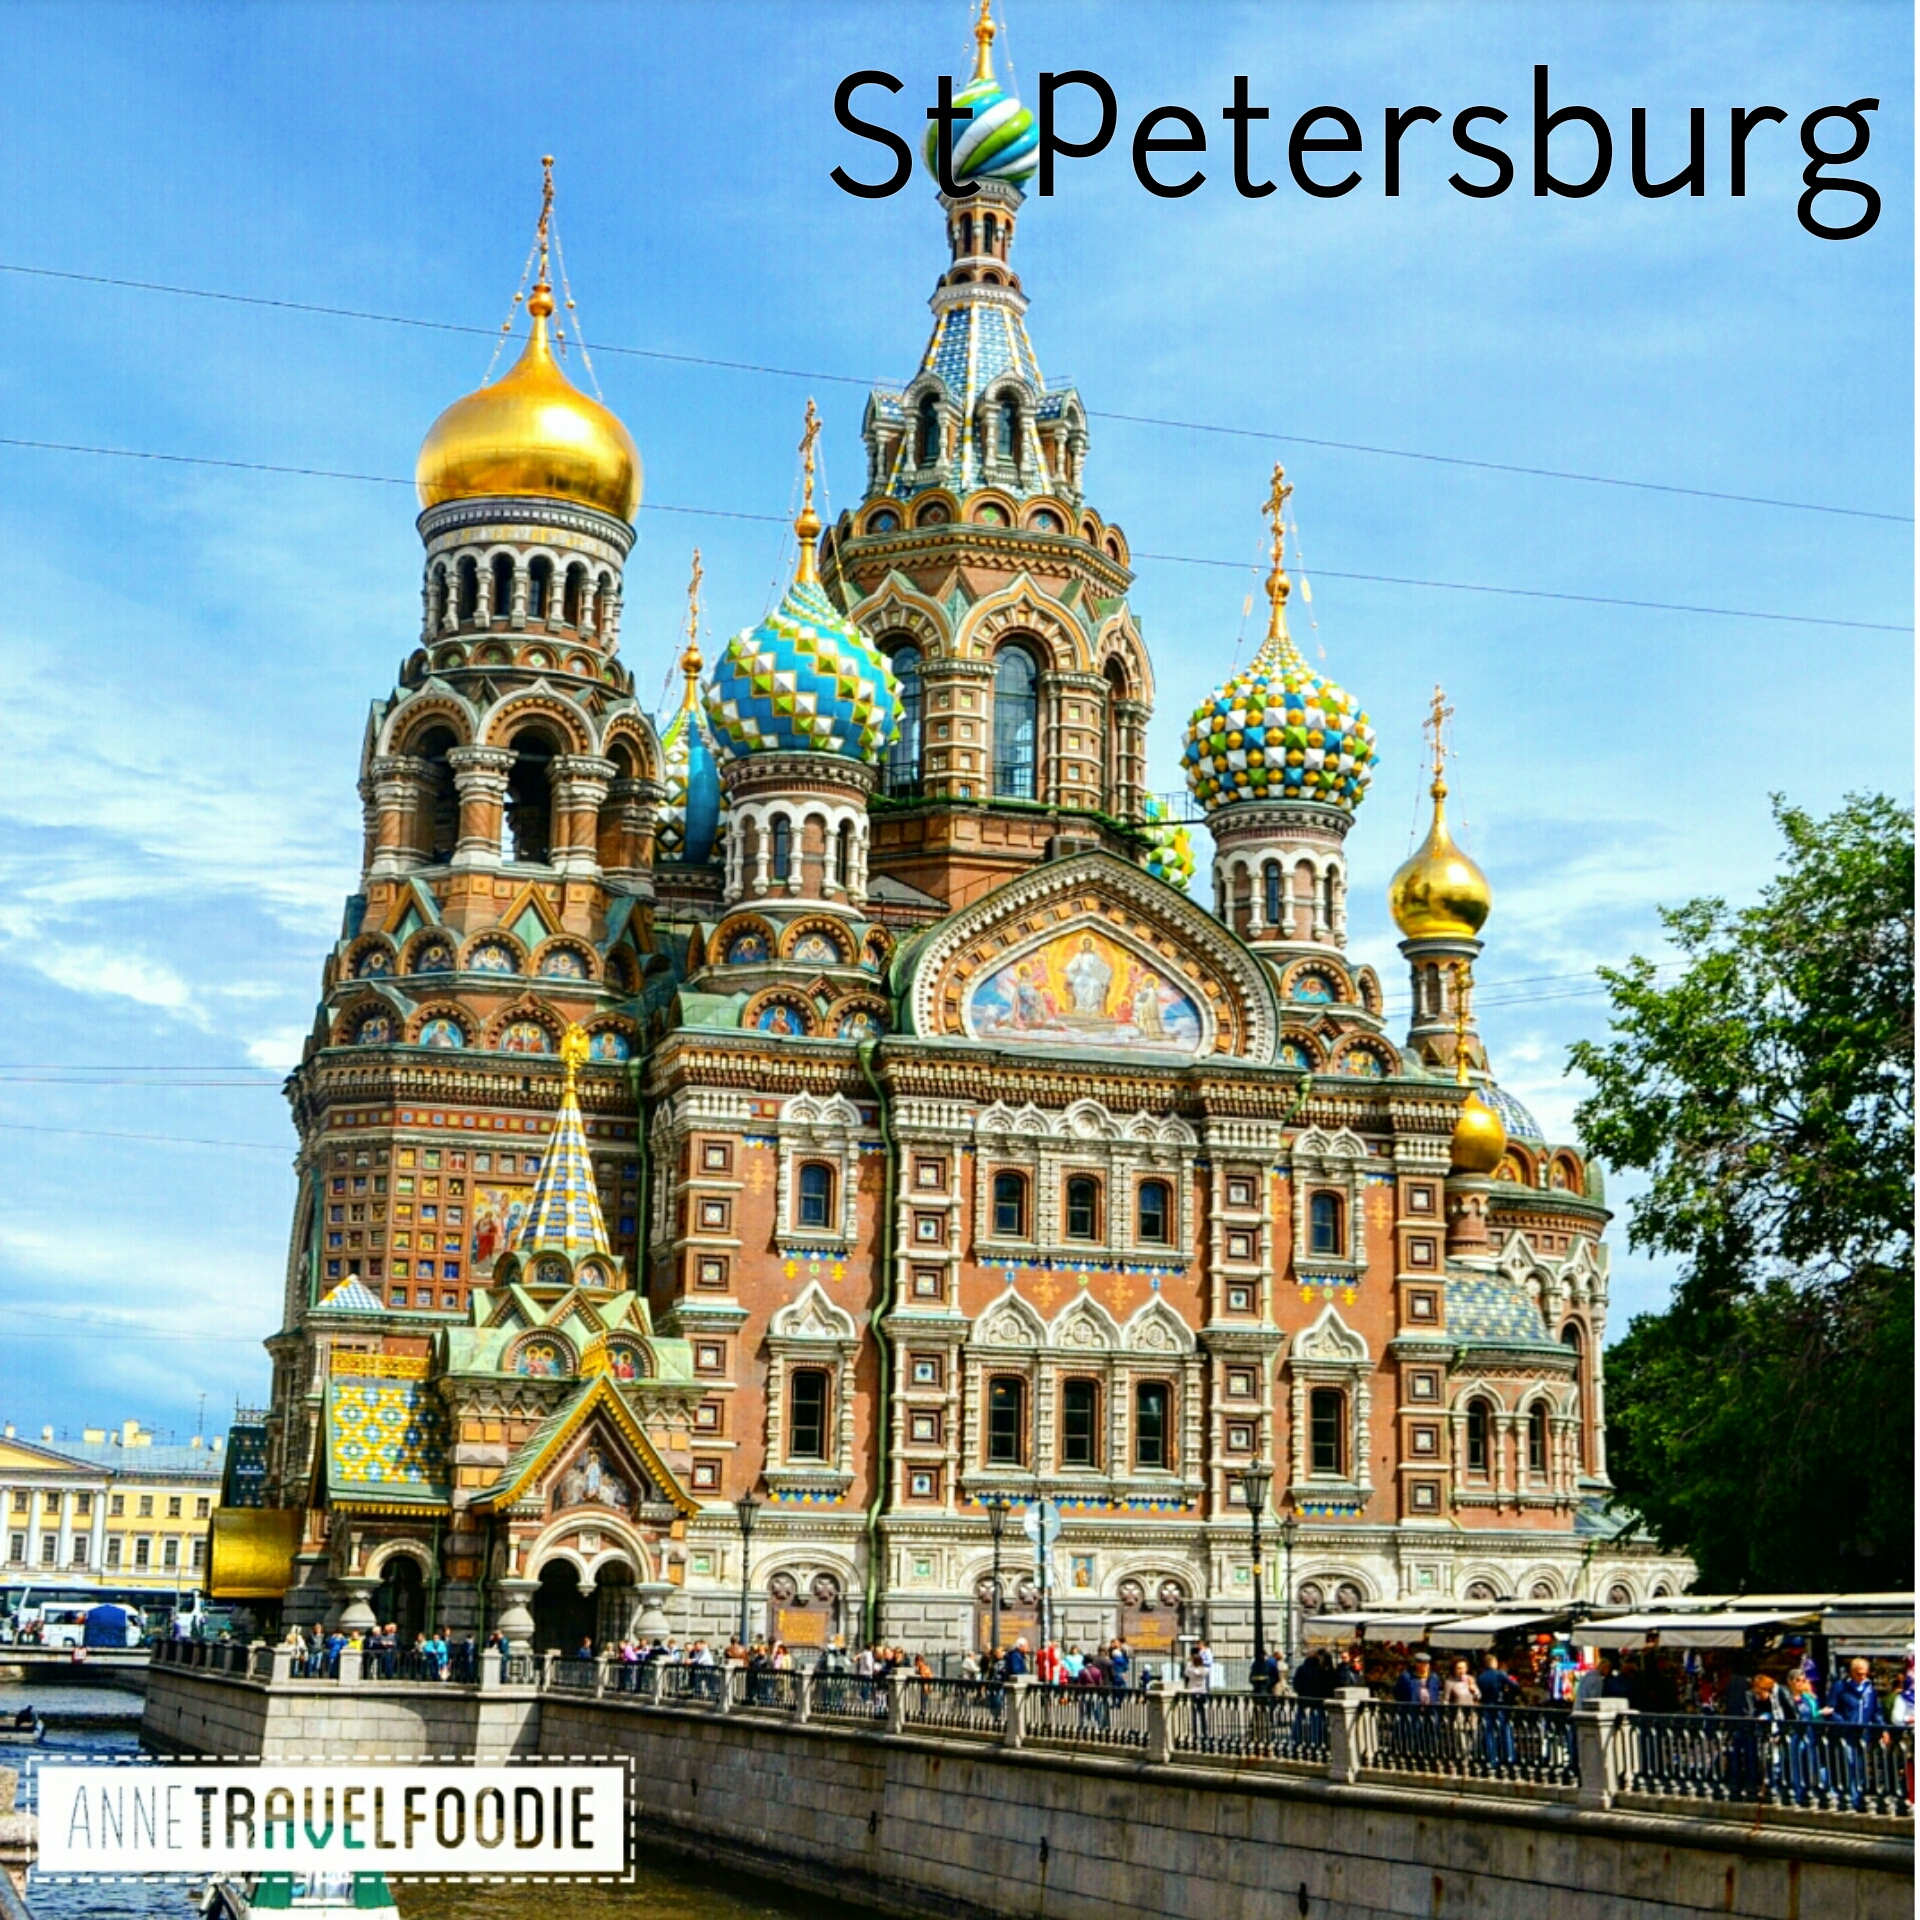 st petersburg anne travel foodie